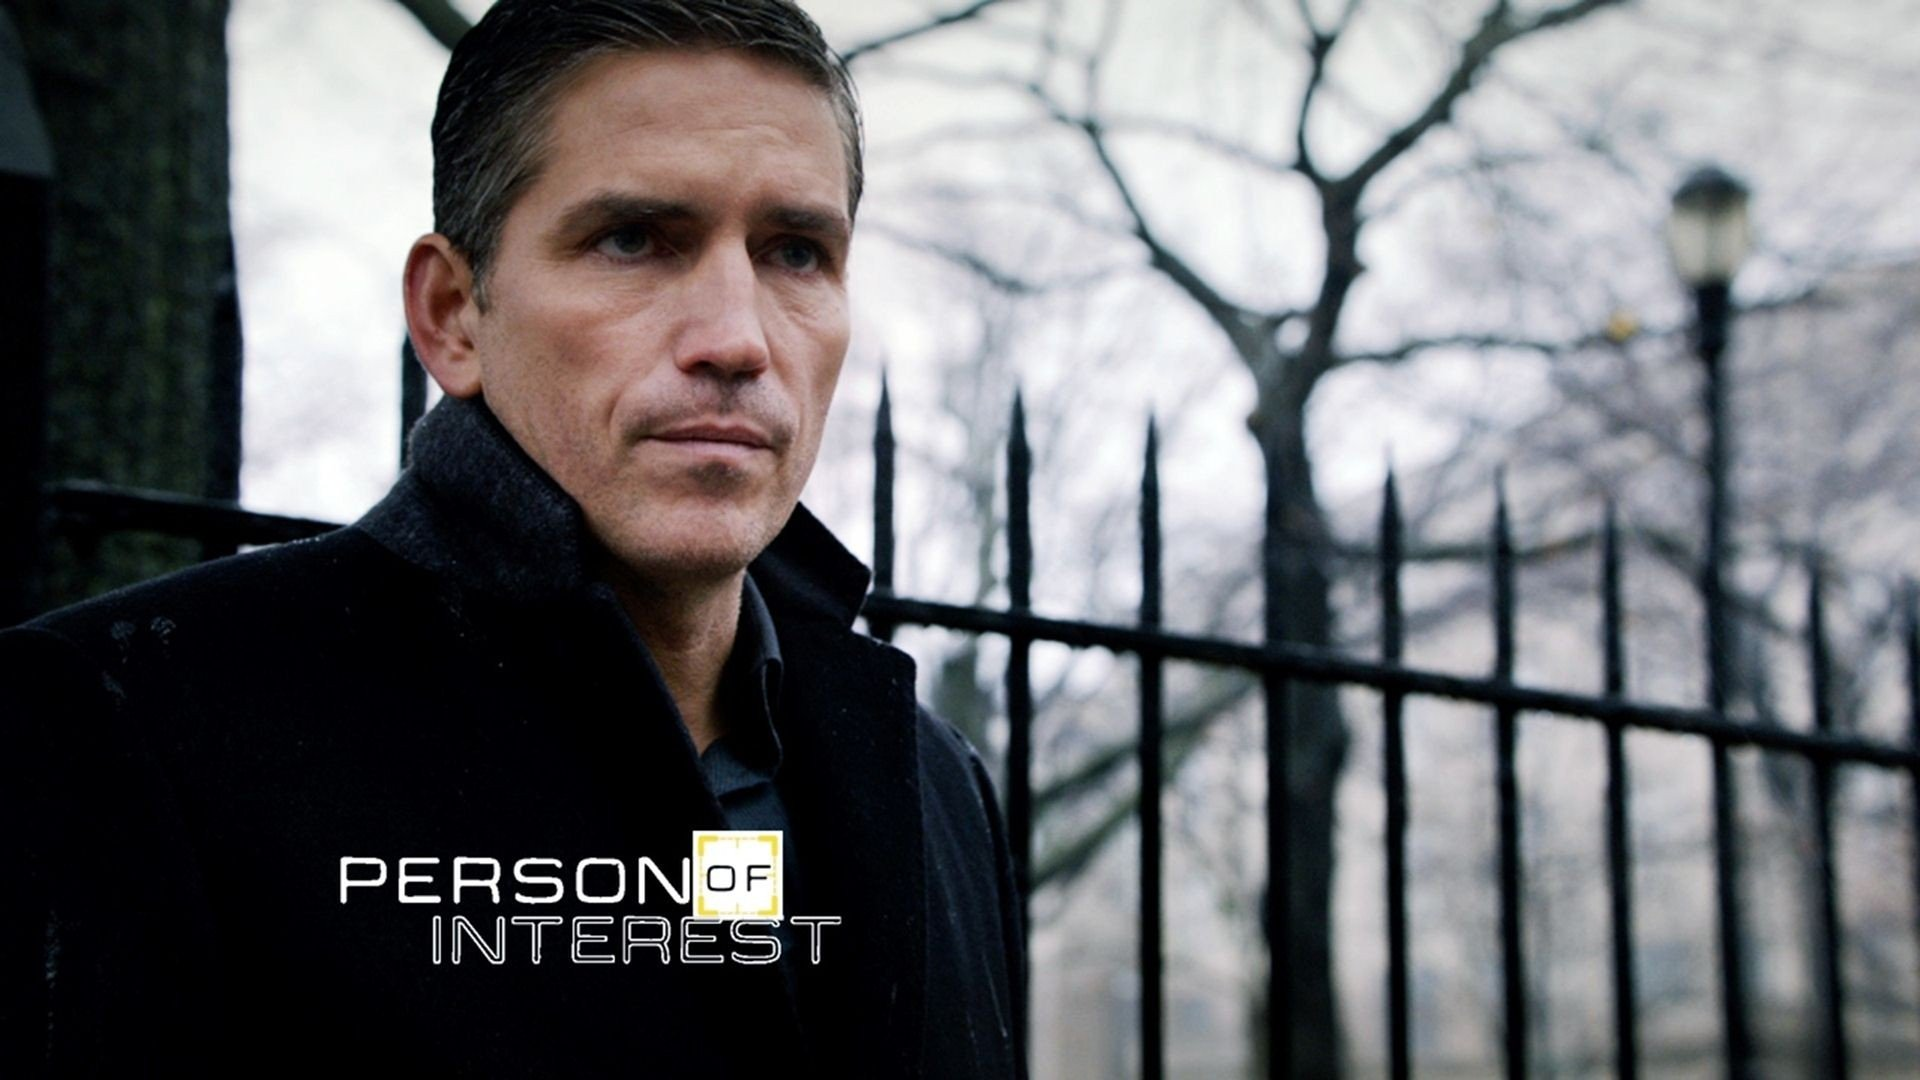 person of interest wallpapers 1920x1080 - photo #6